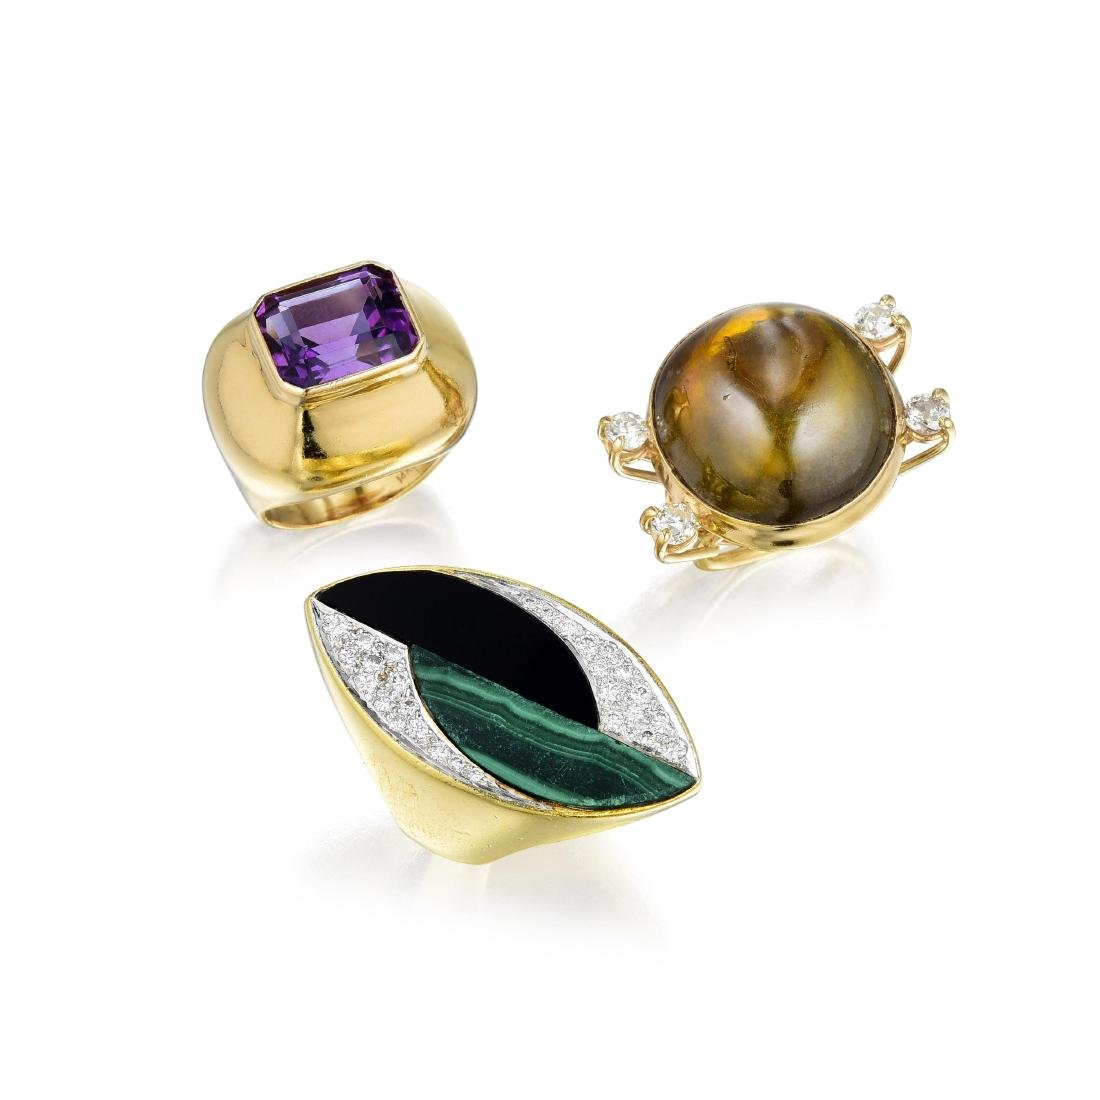 A Group of Gold Diamond and Colored Gemstone Rings